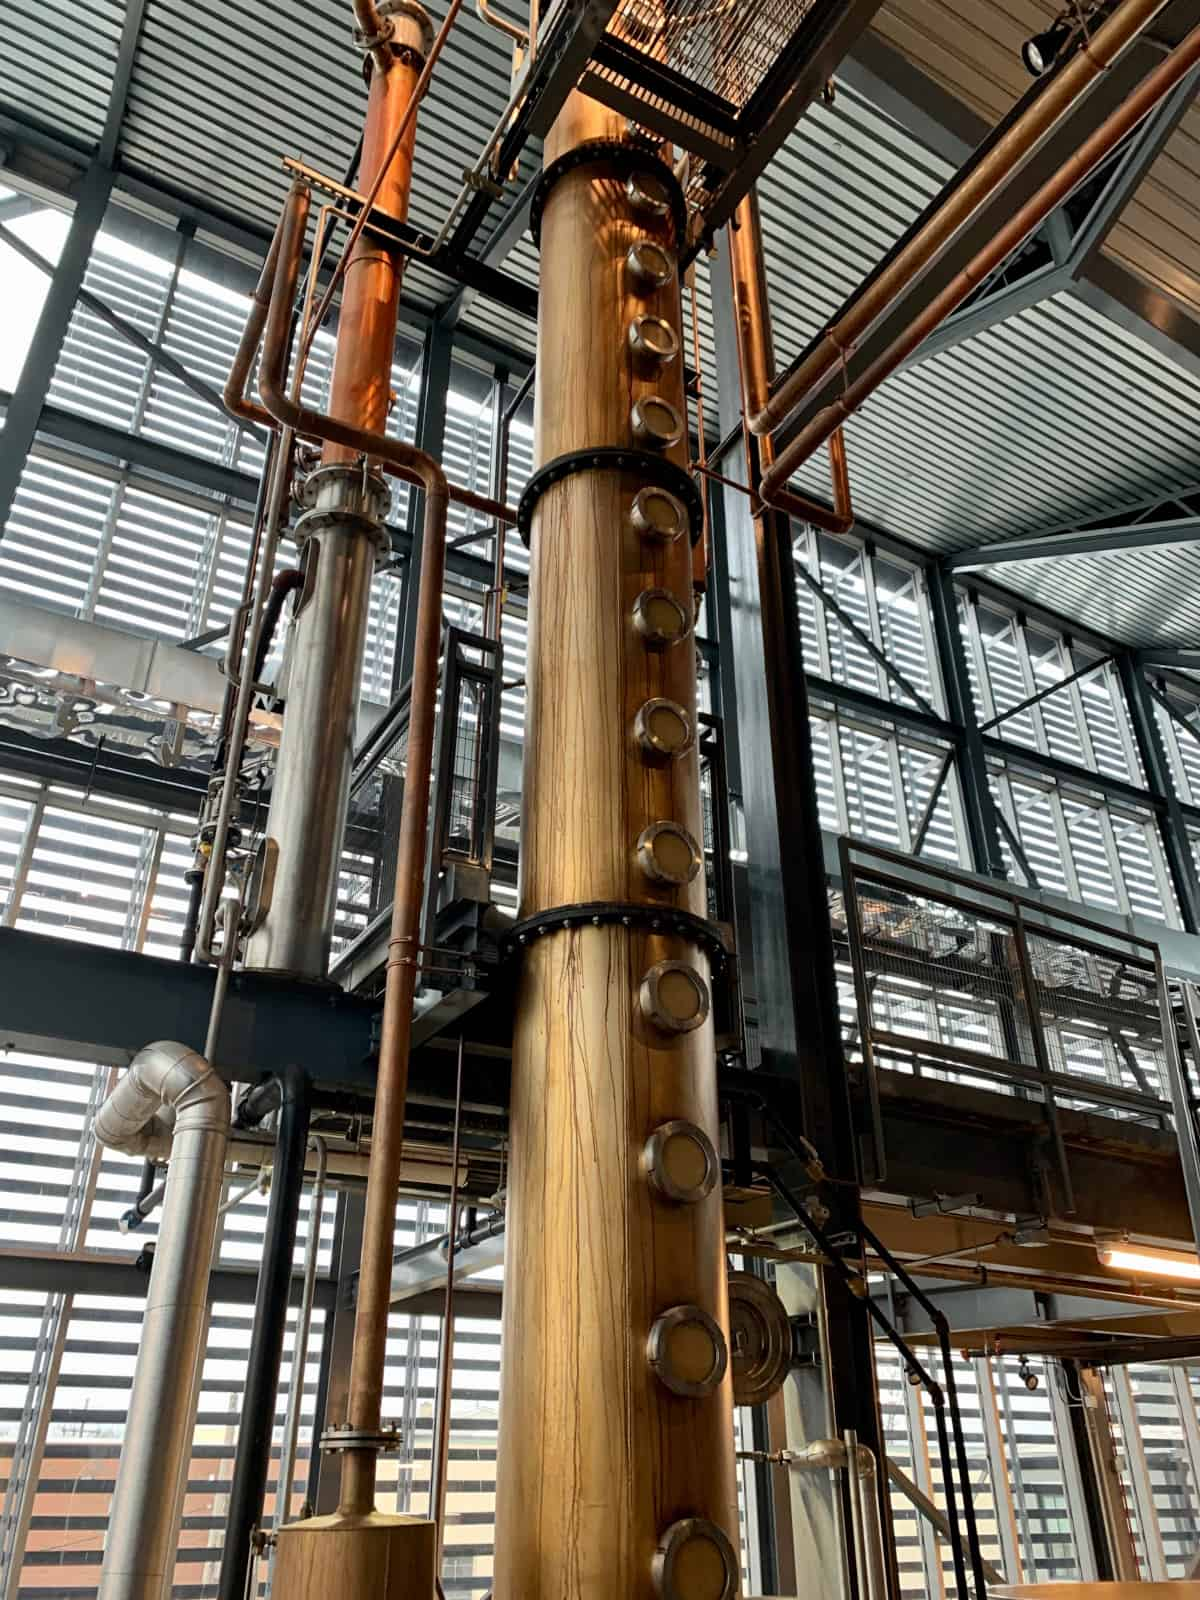 Touring Louisville's Rabbit Hole Distillery | Rabbit Hole is one of the most new and modern urban distilleries in the Louisville area. Here's what to expect on a visit, what it looks like inside, and why the rooftop bar is a must-visit. What to see on the Bourbon Trail or Urban Bourbon Trail, things to do in Louisville. #bourbon #bourbontrail #distillery #louisville #kentucky